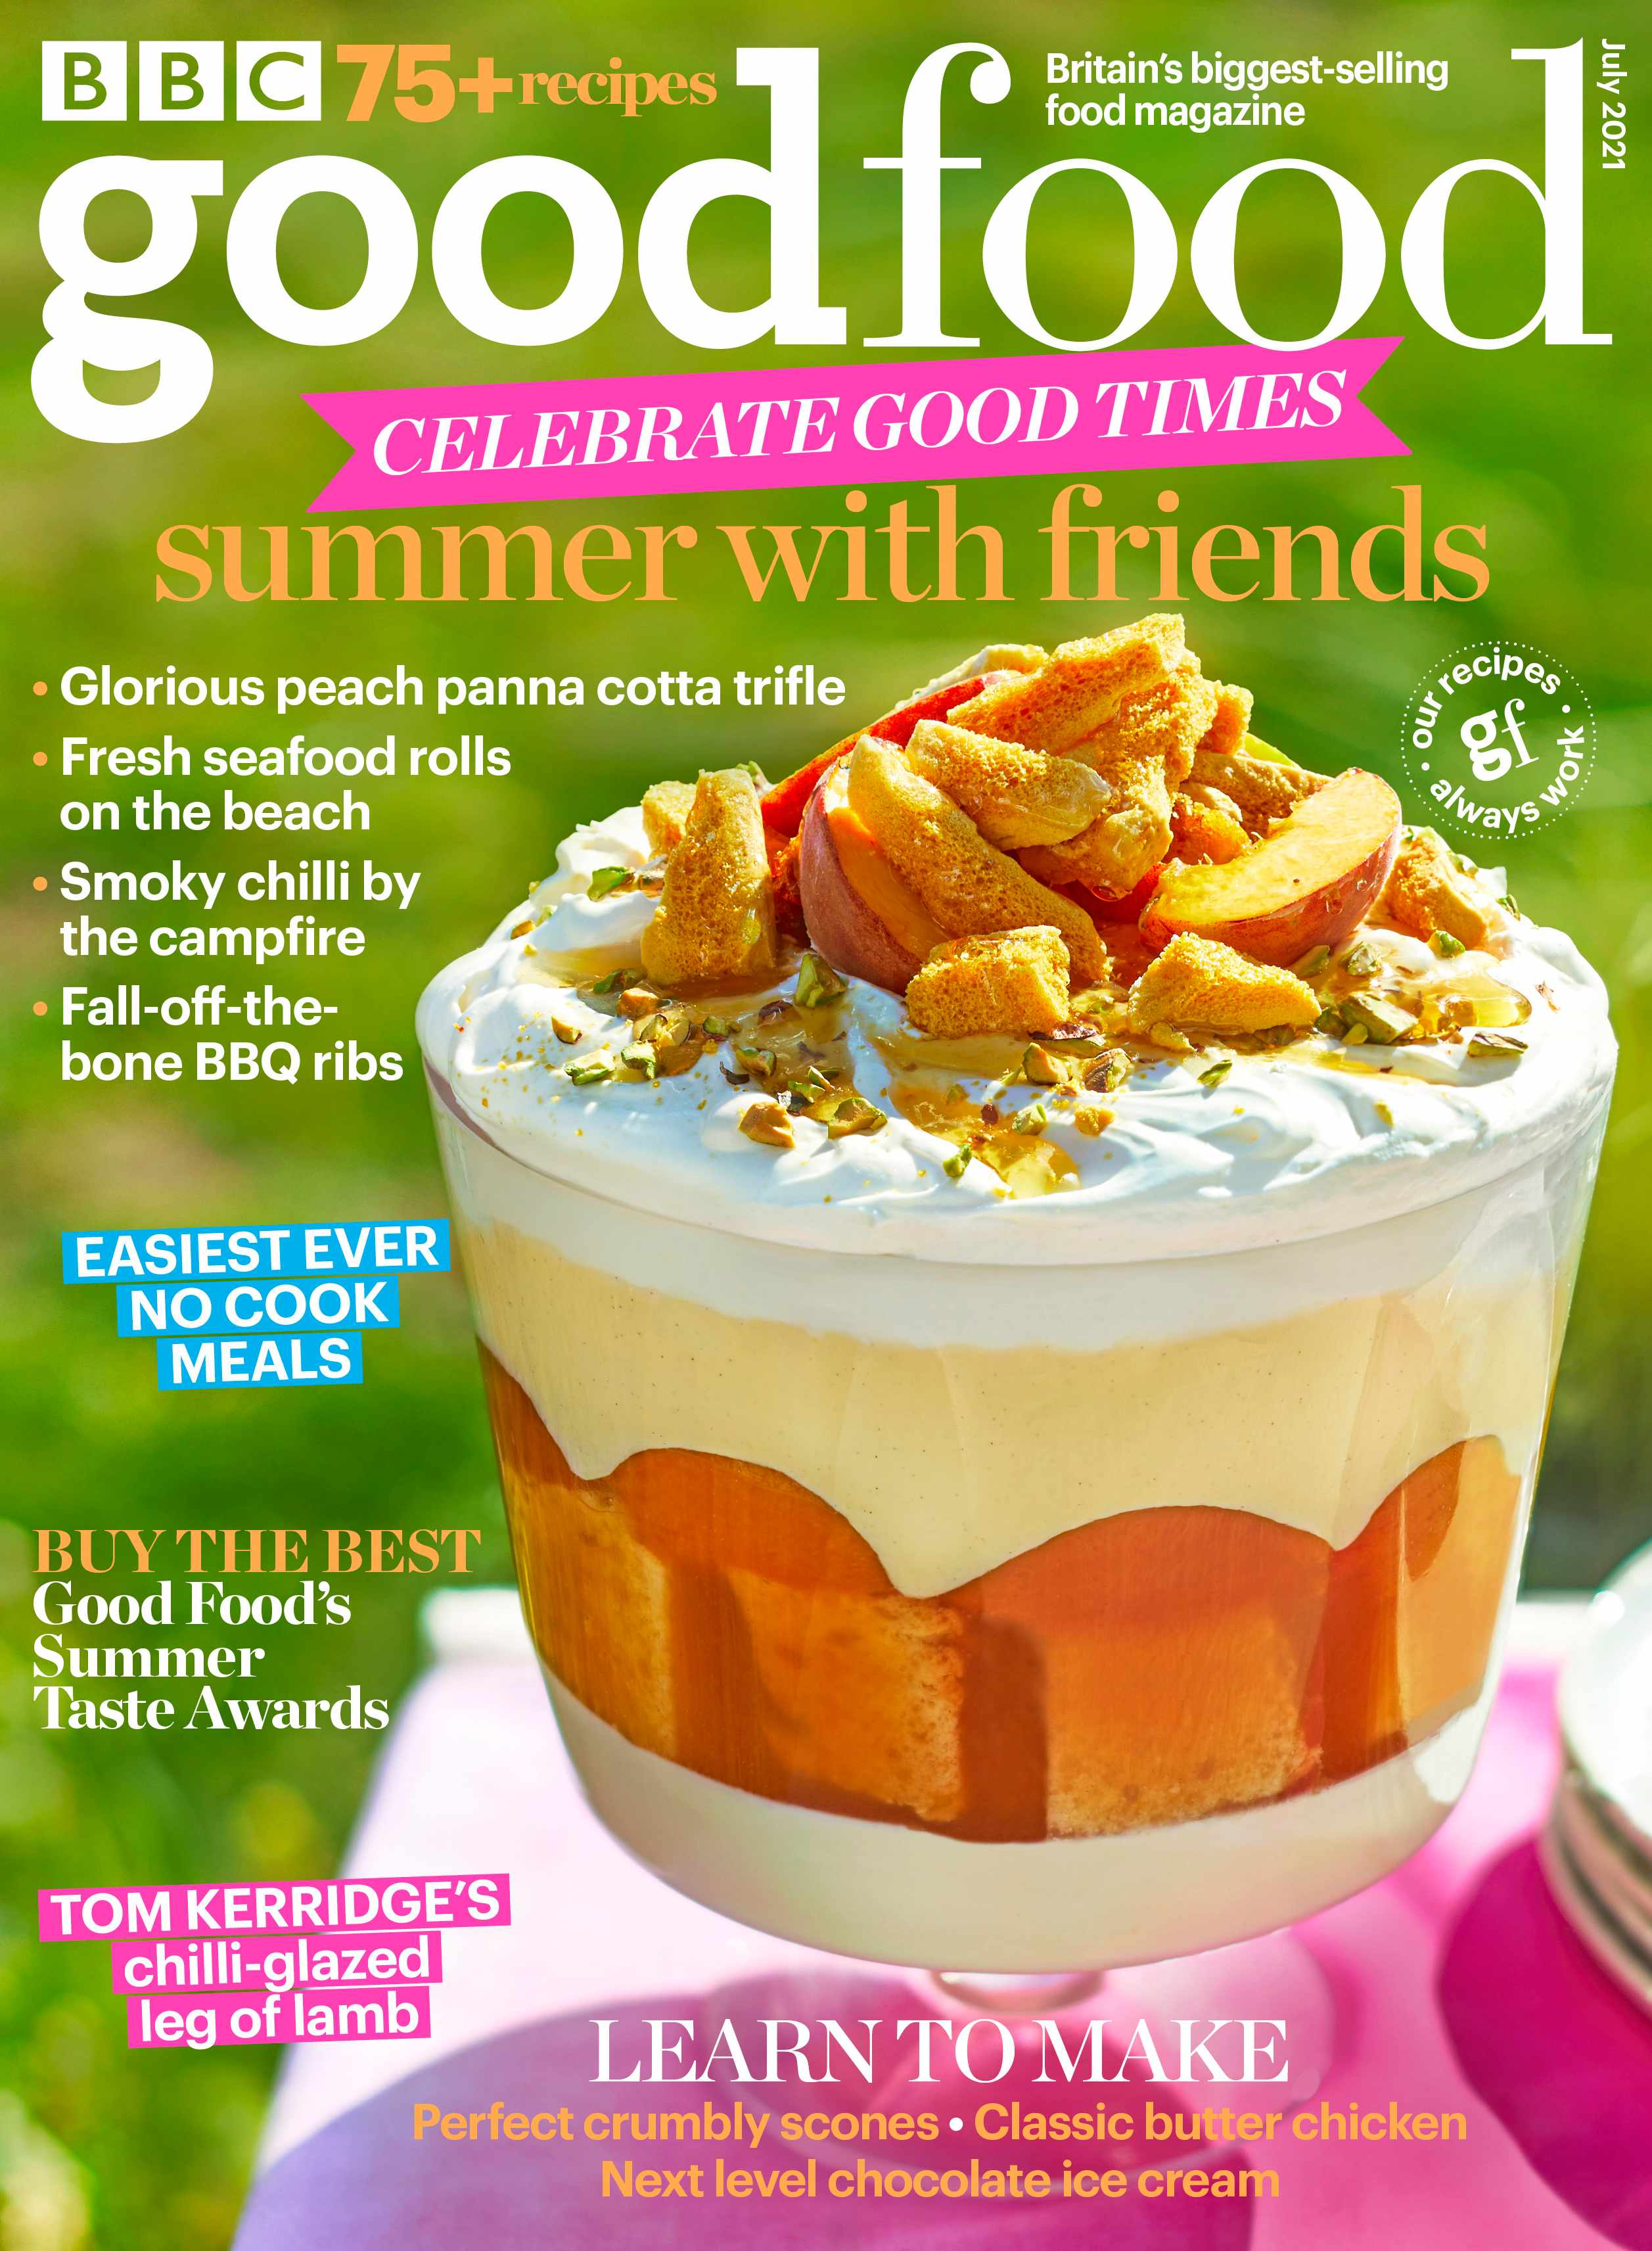 Good Food July 2021 cover